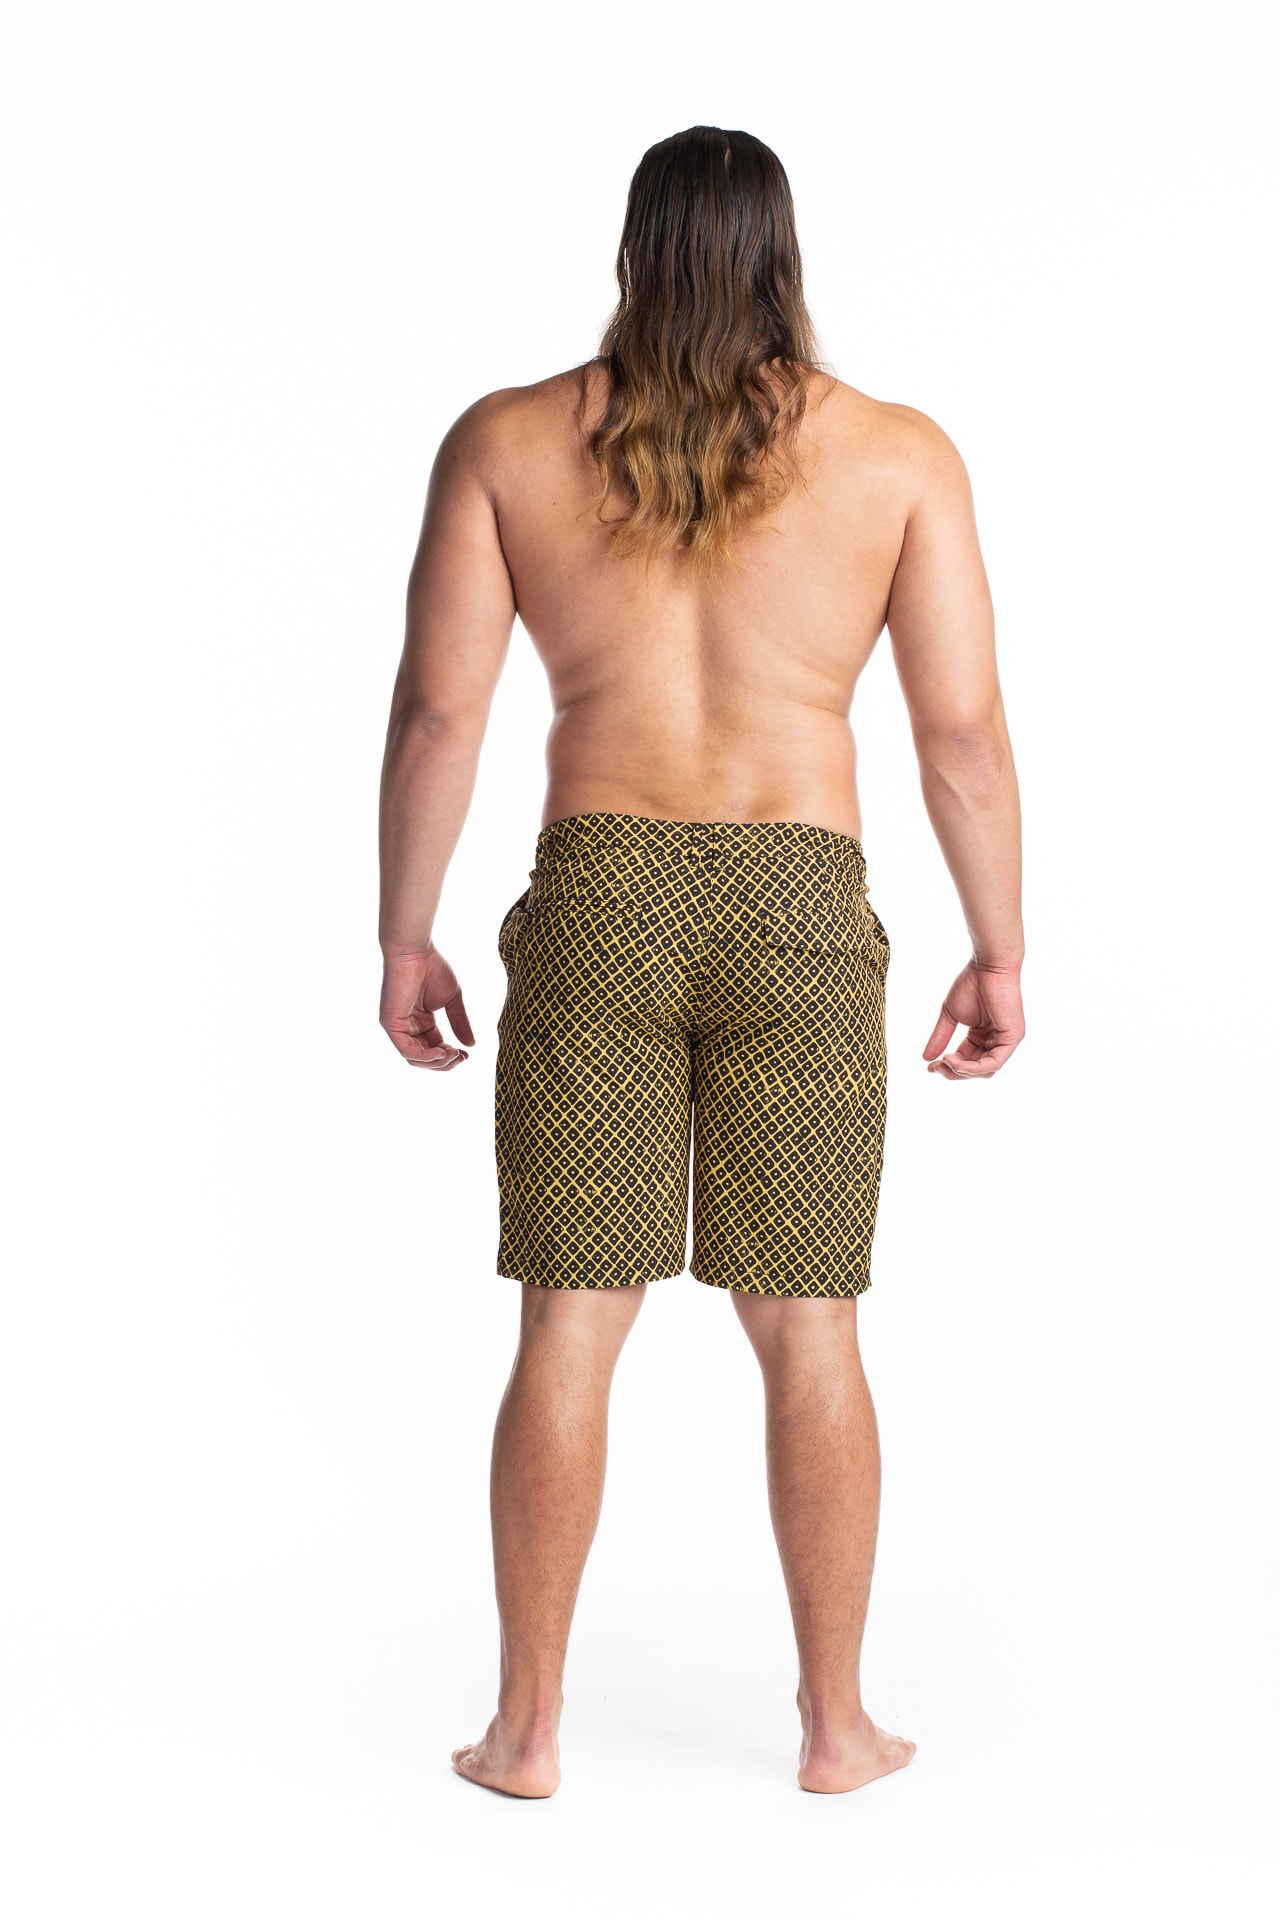 Male model wearing 4-way Stretch in Yellow Black Upena - Back View